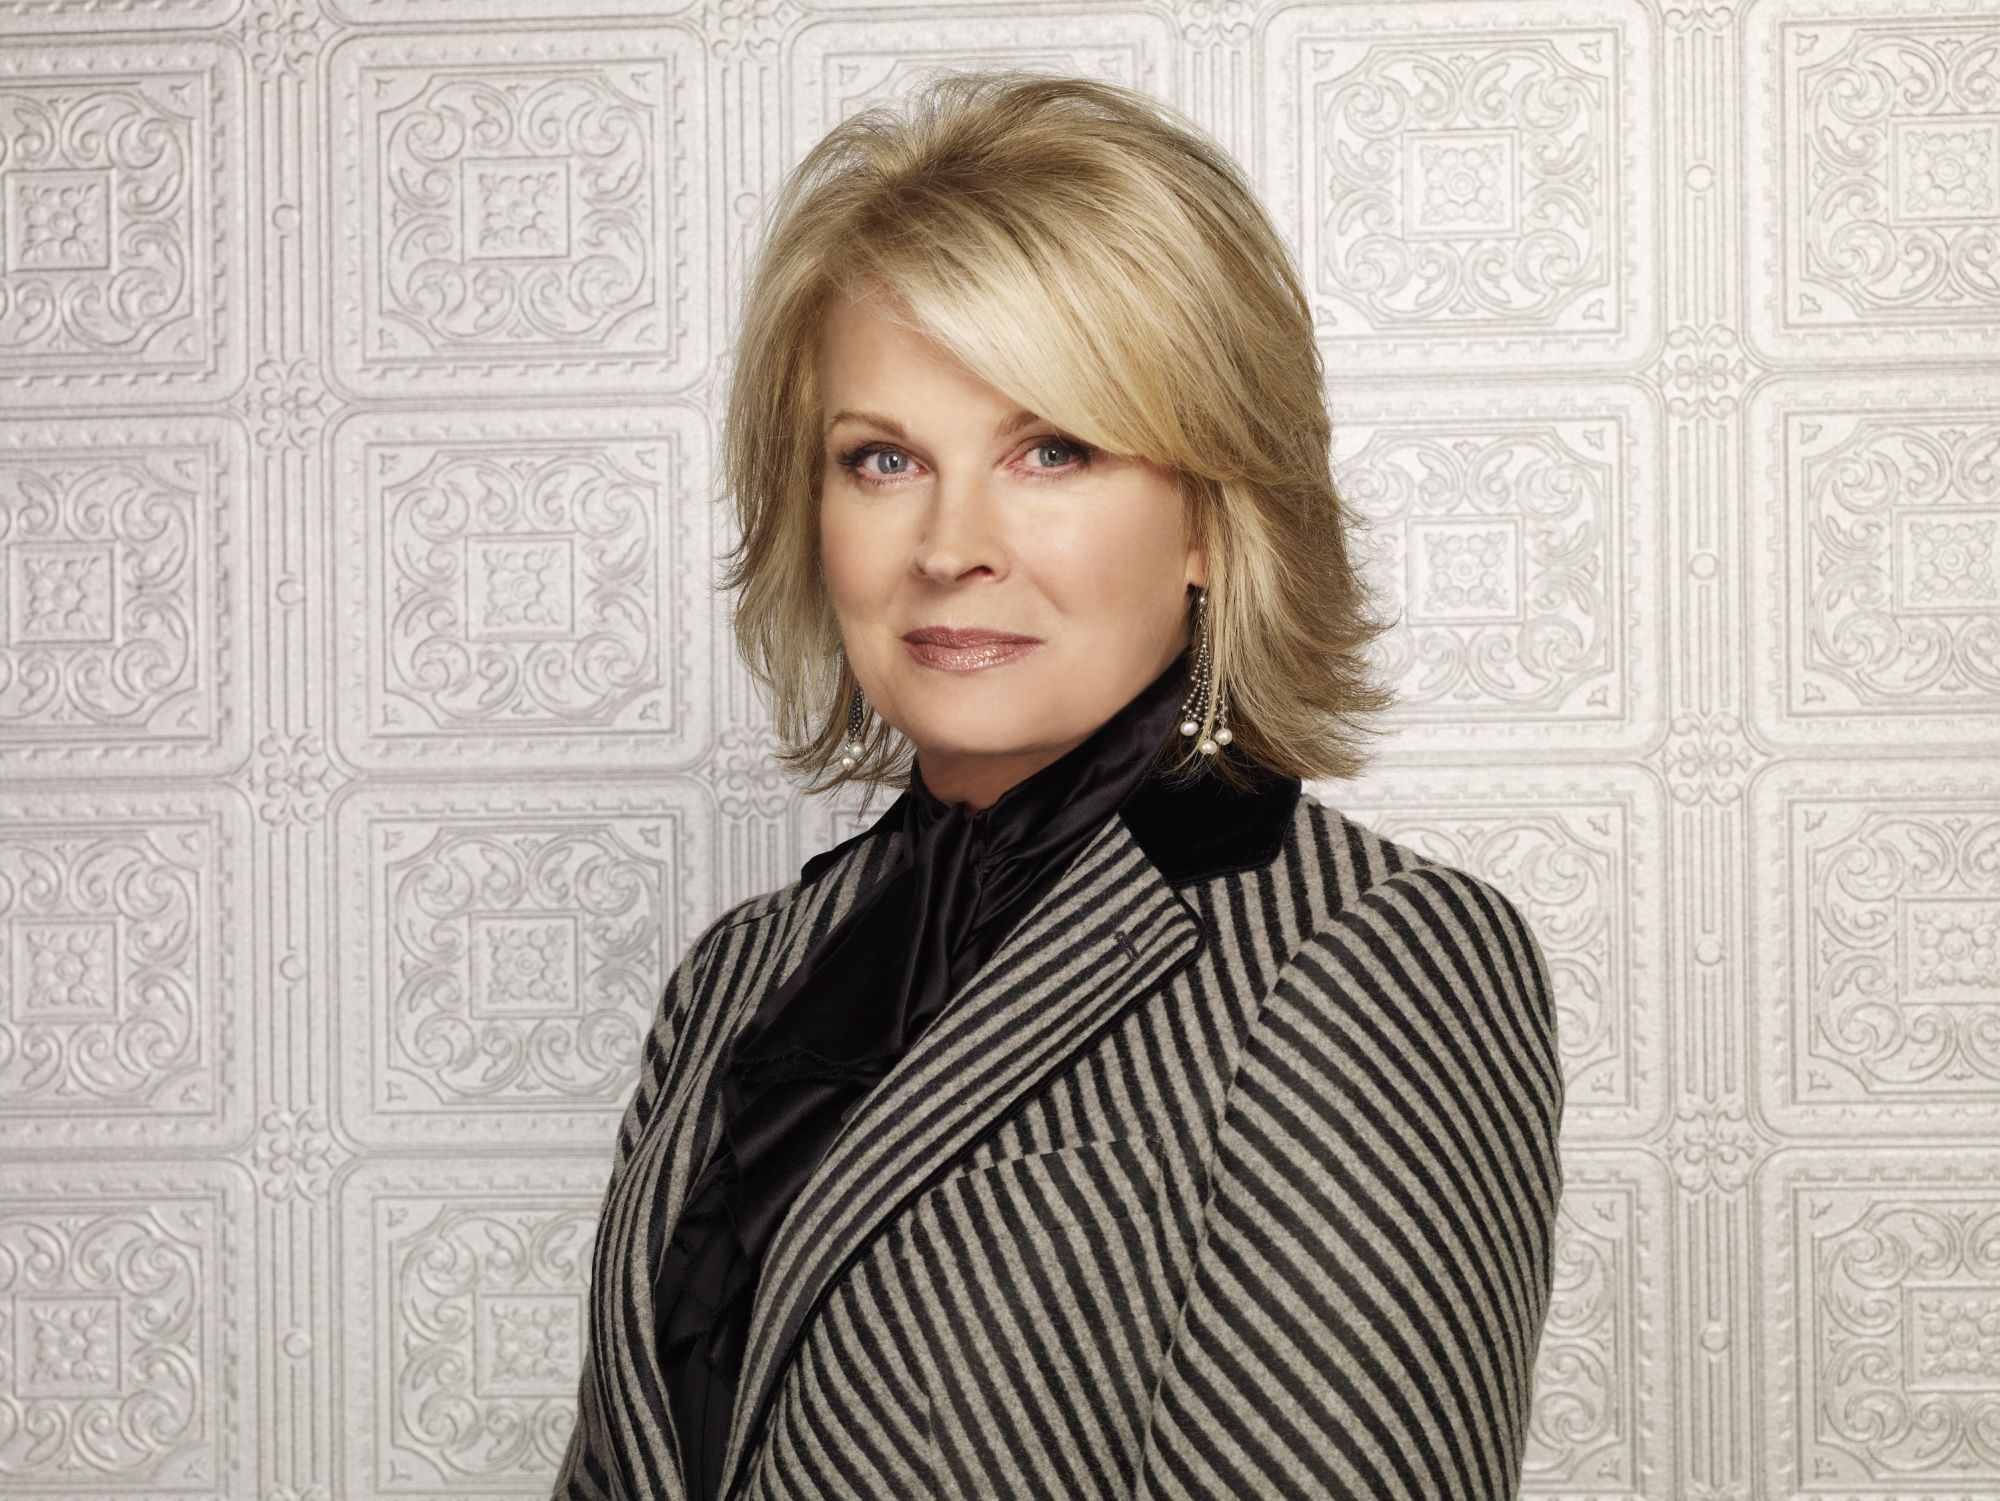 Candice Bergen Photo Gallery 59 Best Candice Bergen Pics